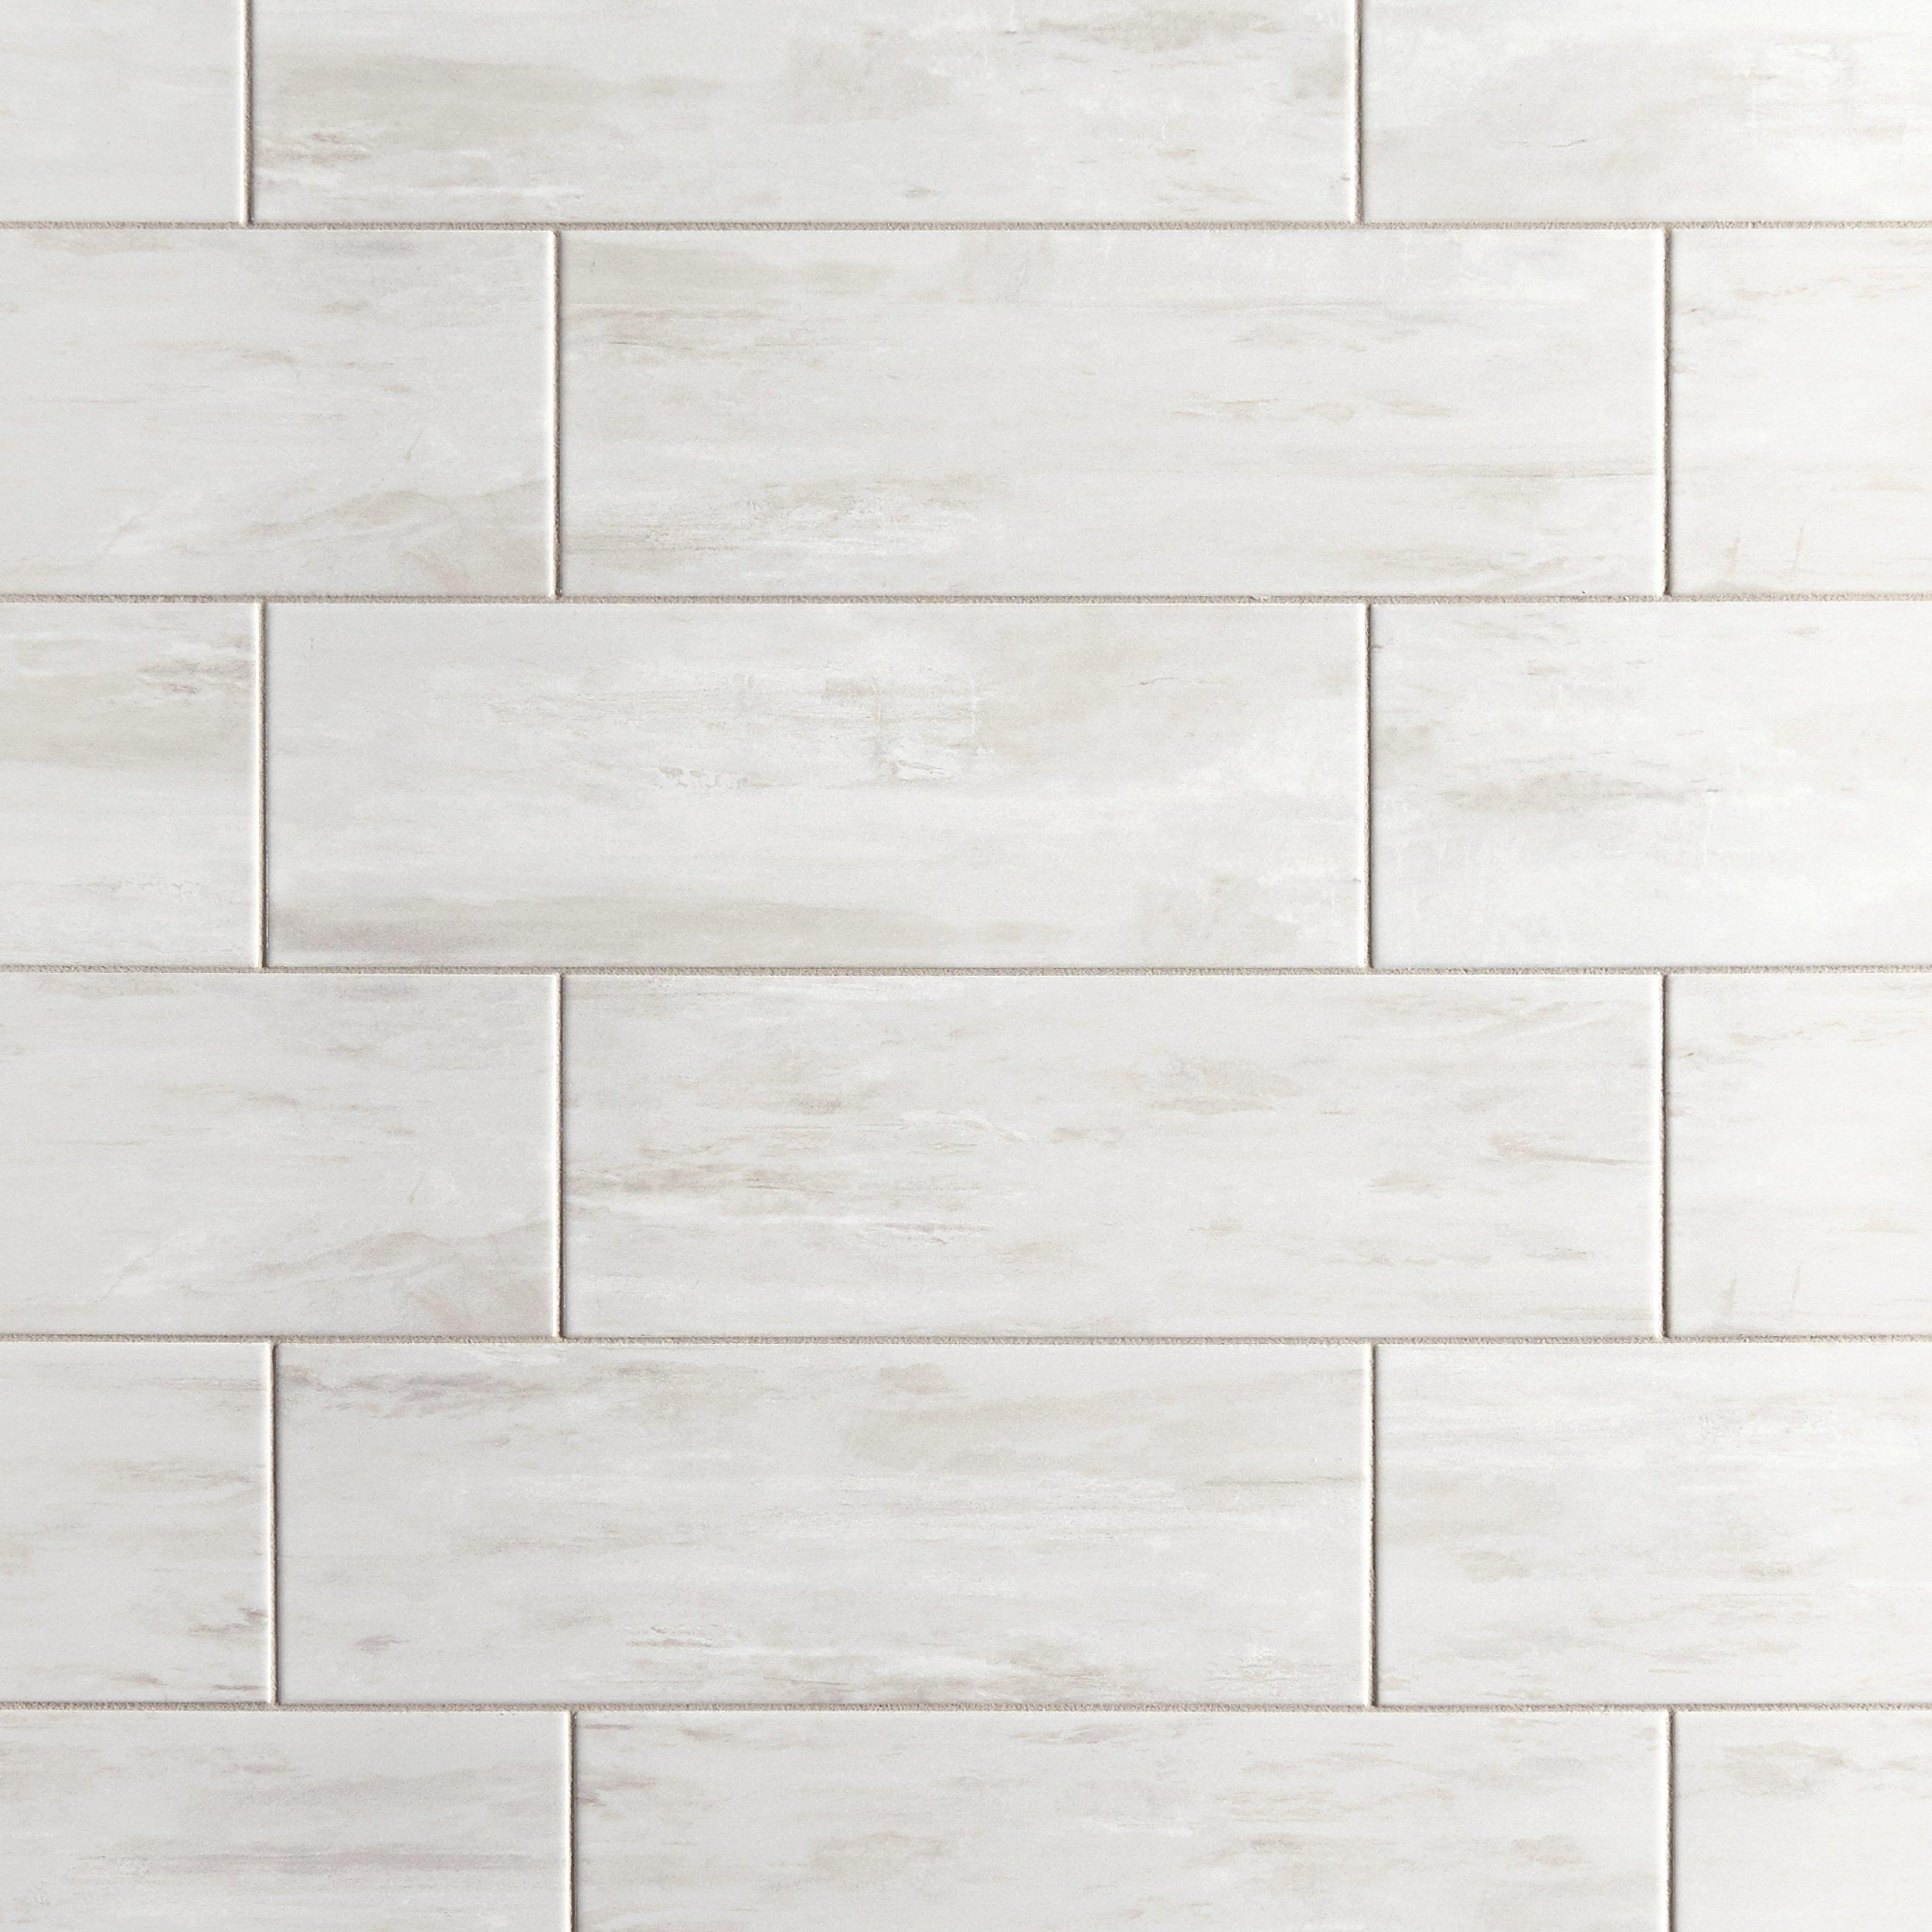 White ceramic tile floor home improvement white porcelain backsplash white ceramic tile floor white ceramic tile floor dailygadgetfo Image collections